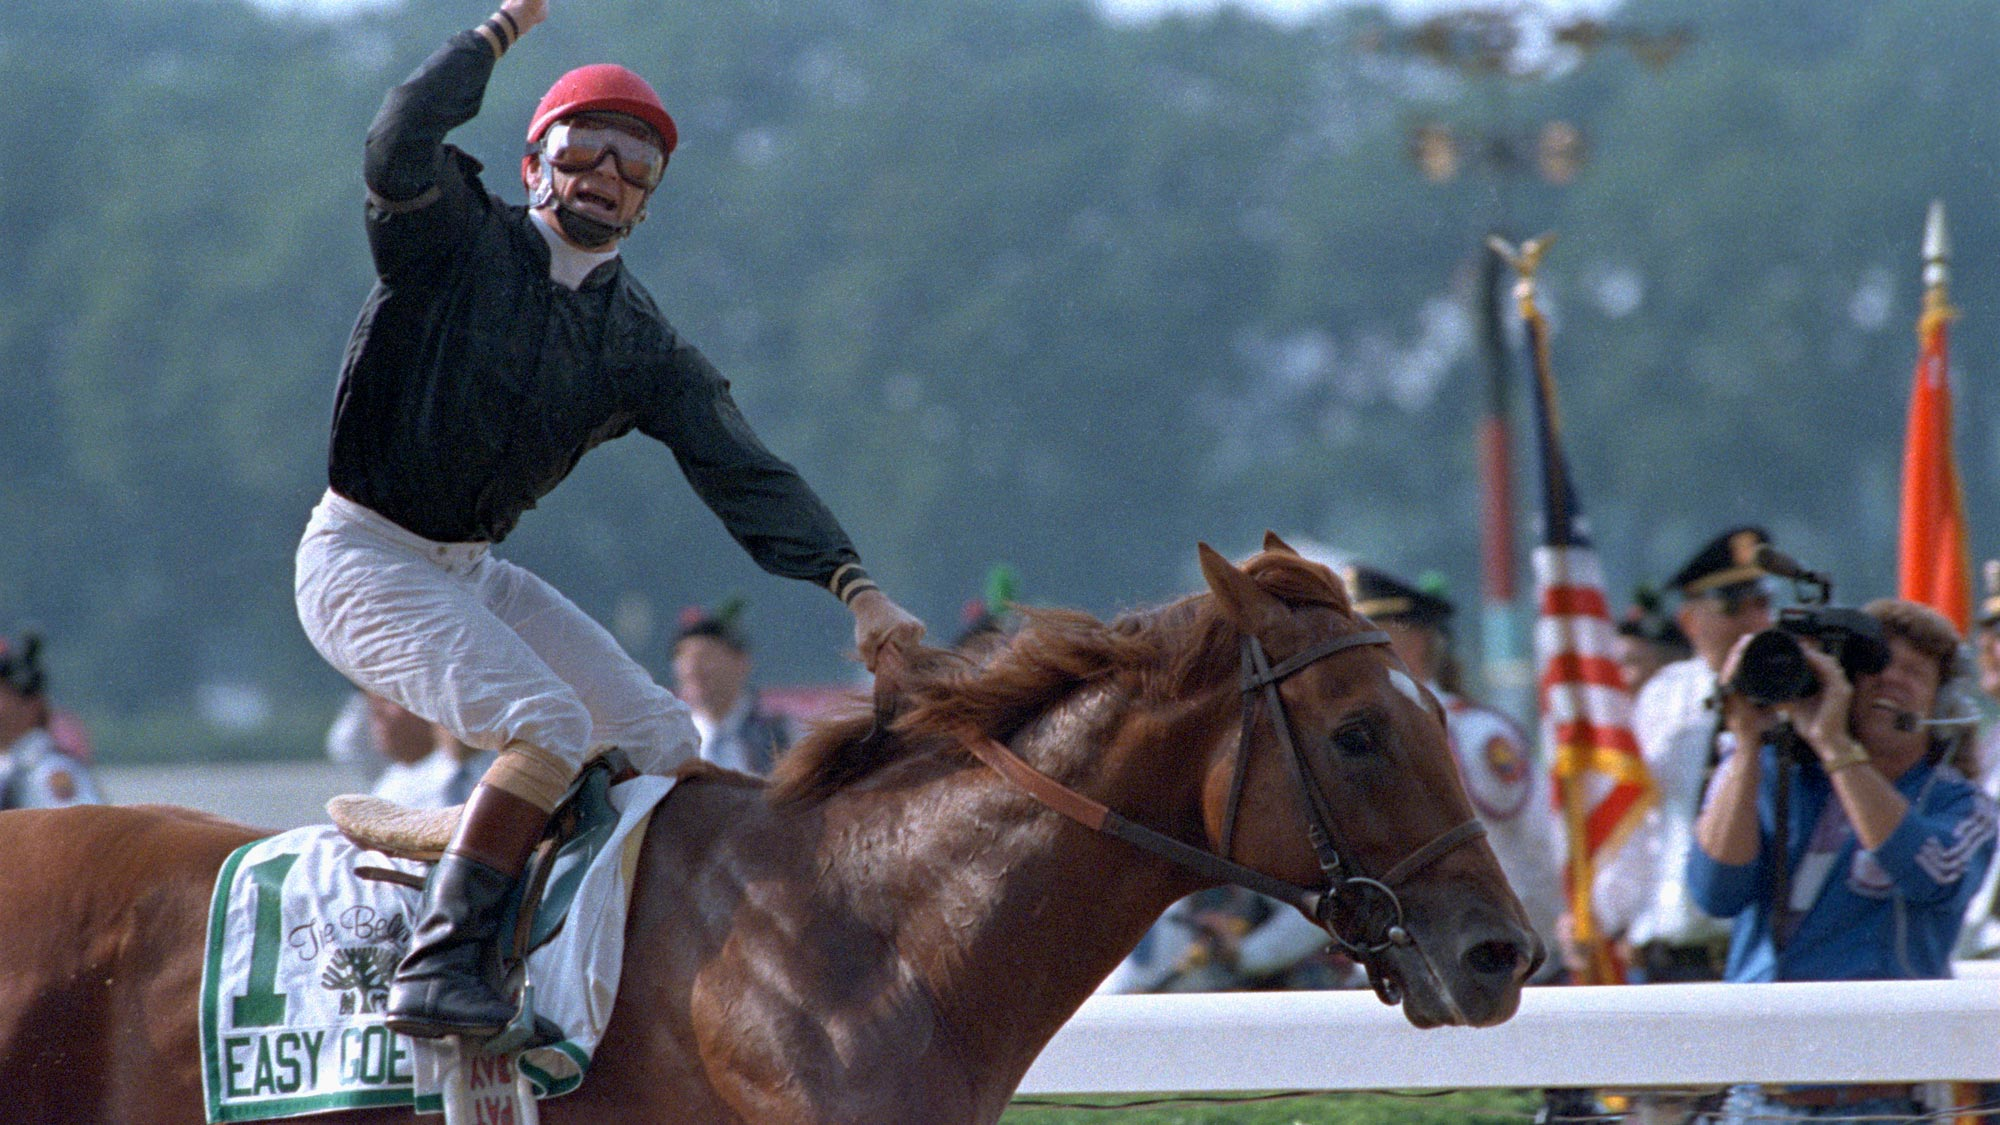 30 Years Ago This Week: The Day Easy Goer Brought Out His Best